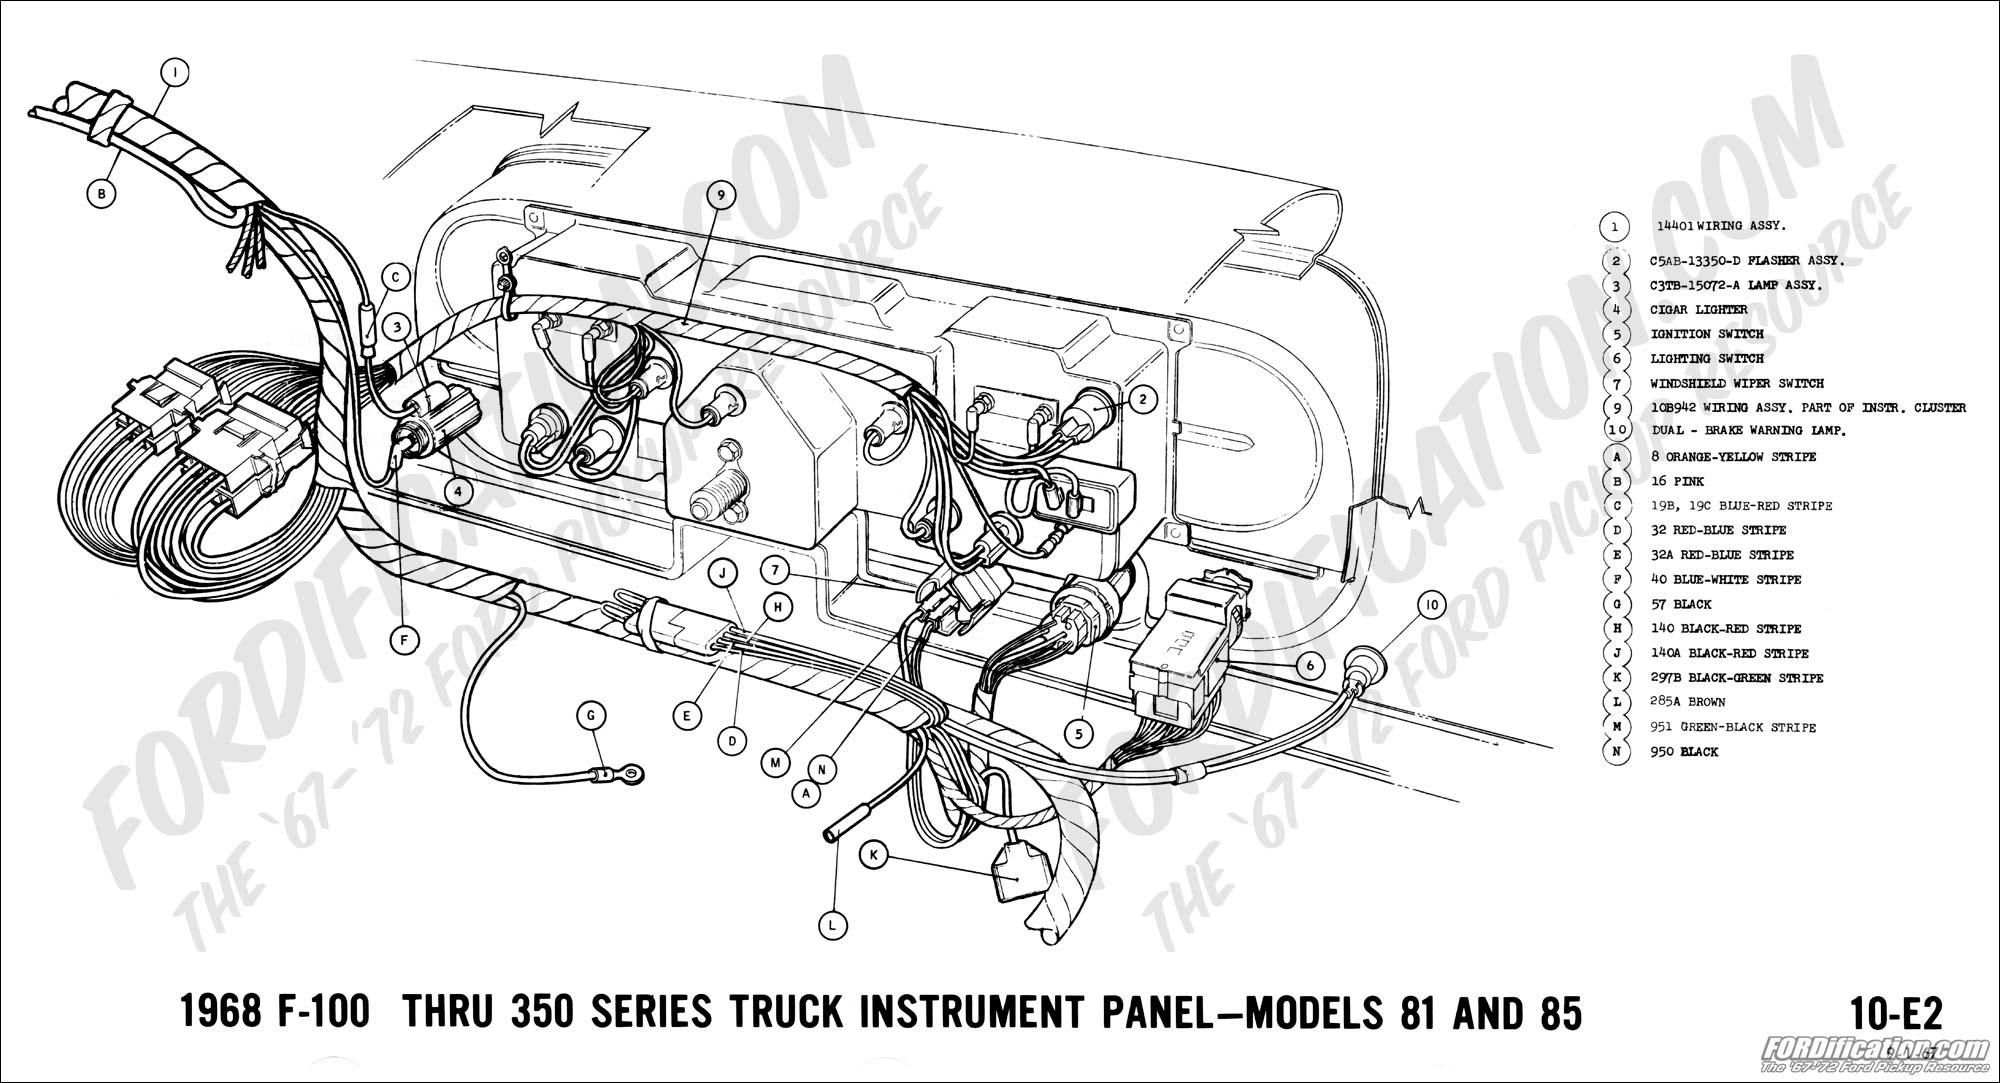 wiring manual - diagrams legend � 1968 f-100 thru f-350 instrument panel